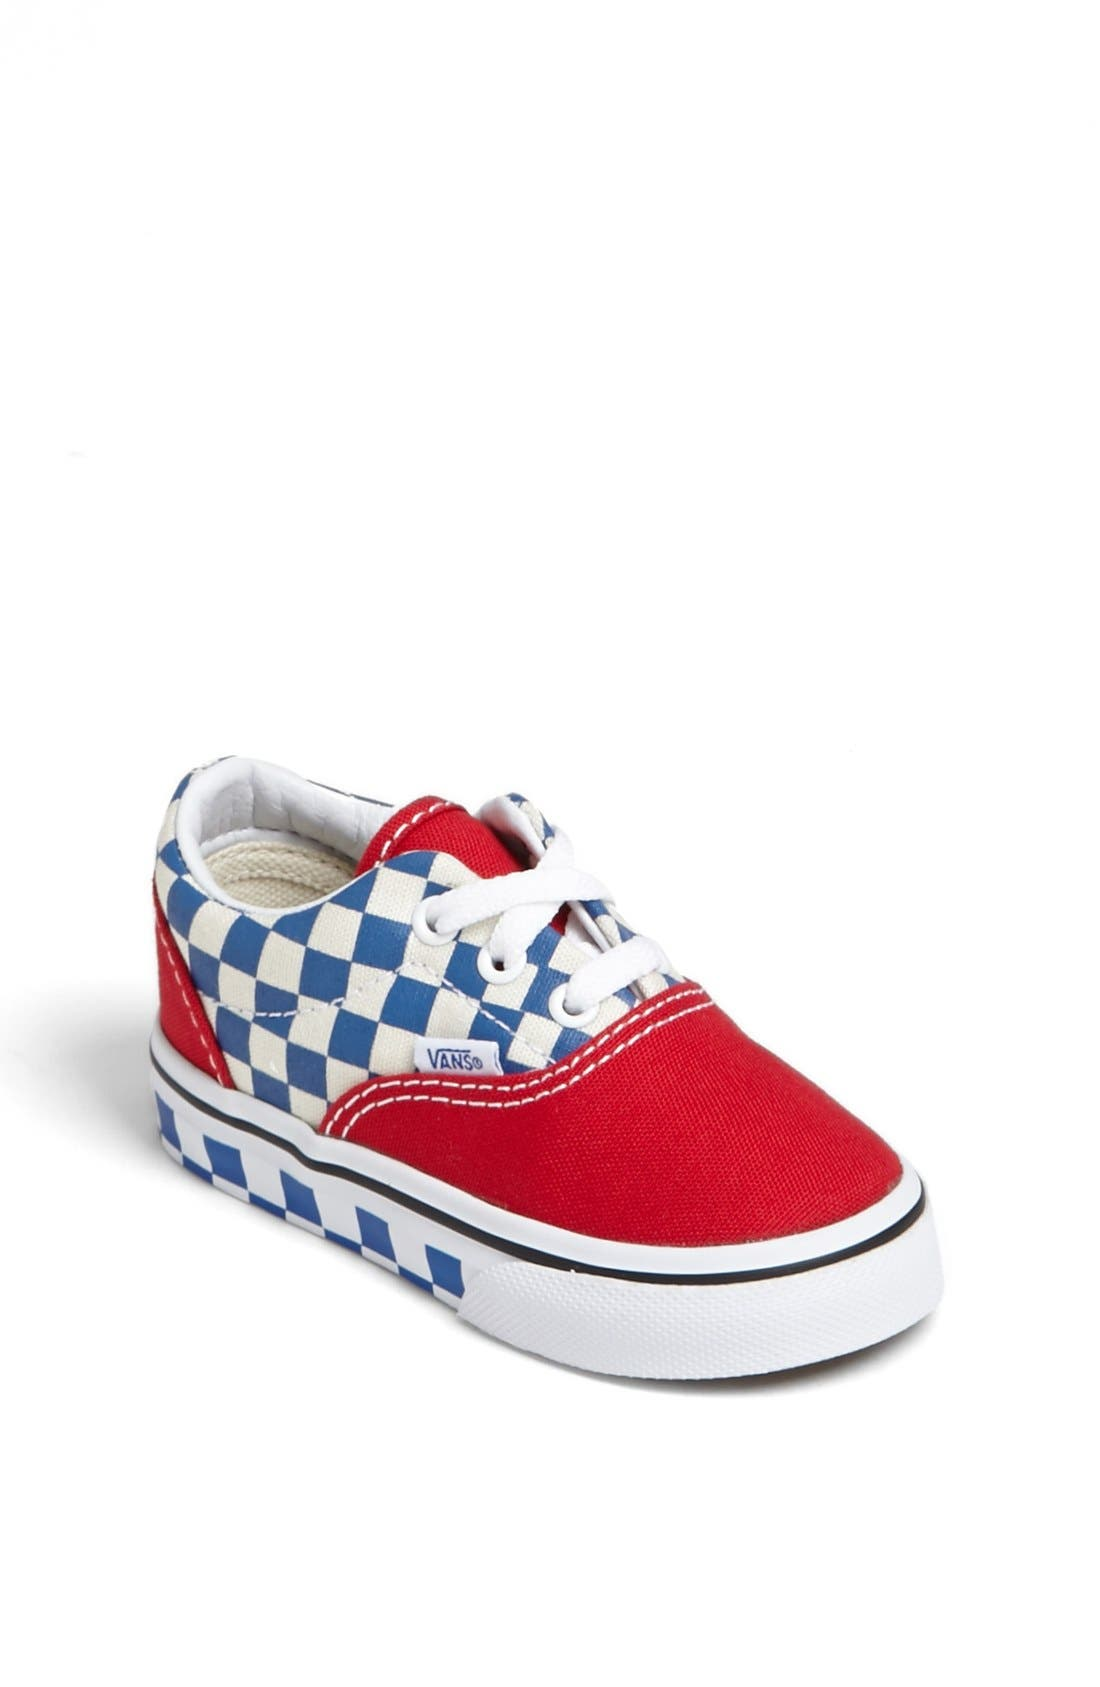 Alternate Image 1 Selected - Vans 'Era - Checkerboard' Sneaker (Baby, Walker & Toddler)